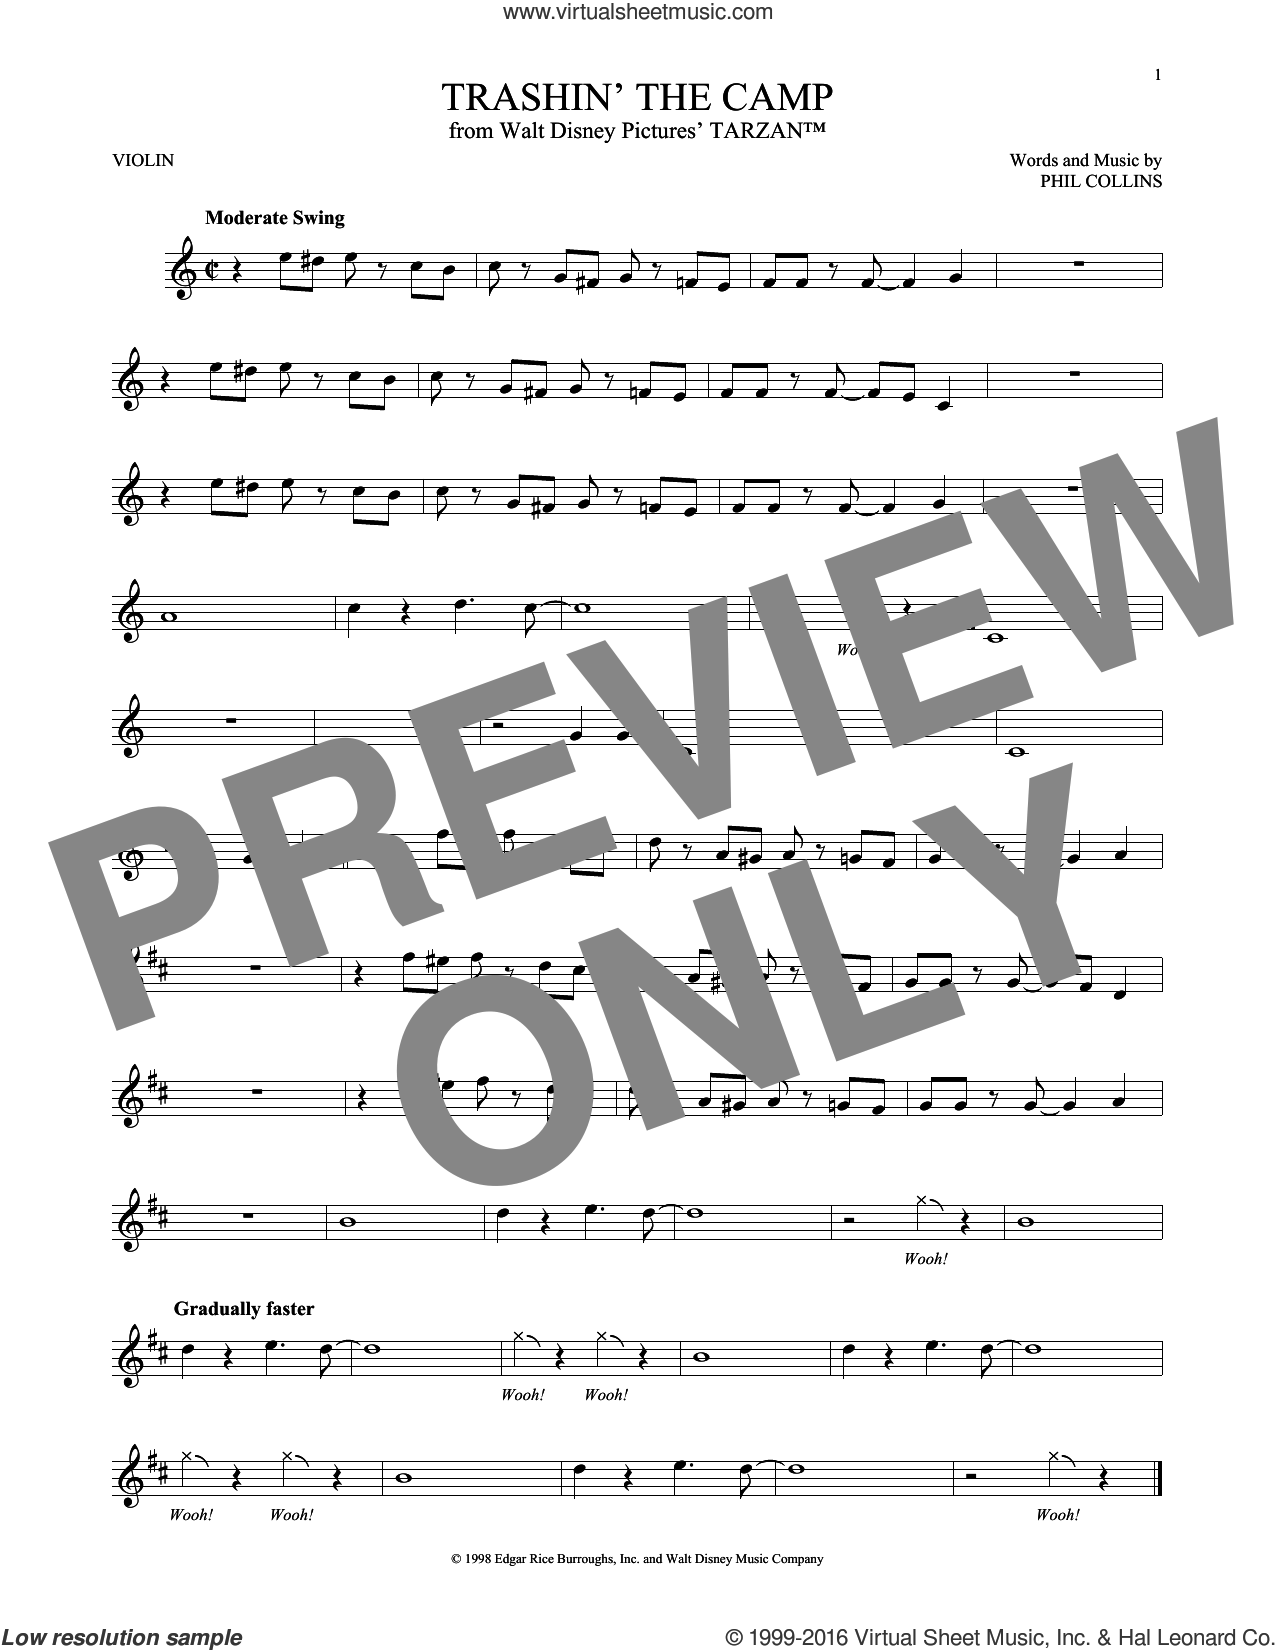 Trashin' The Camp sheet music for violin solo by Phil Collins. Score Image Preview.